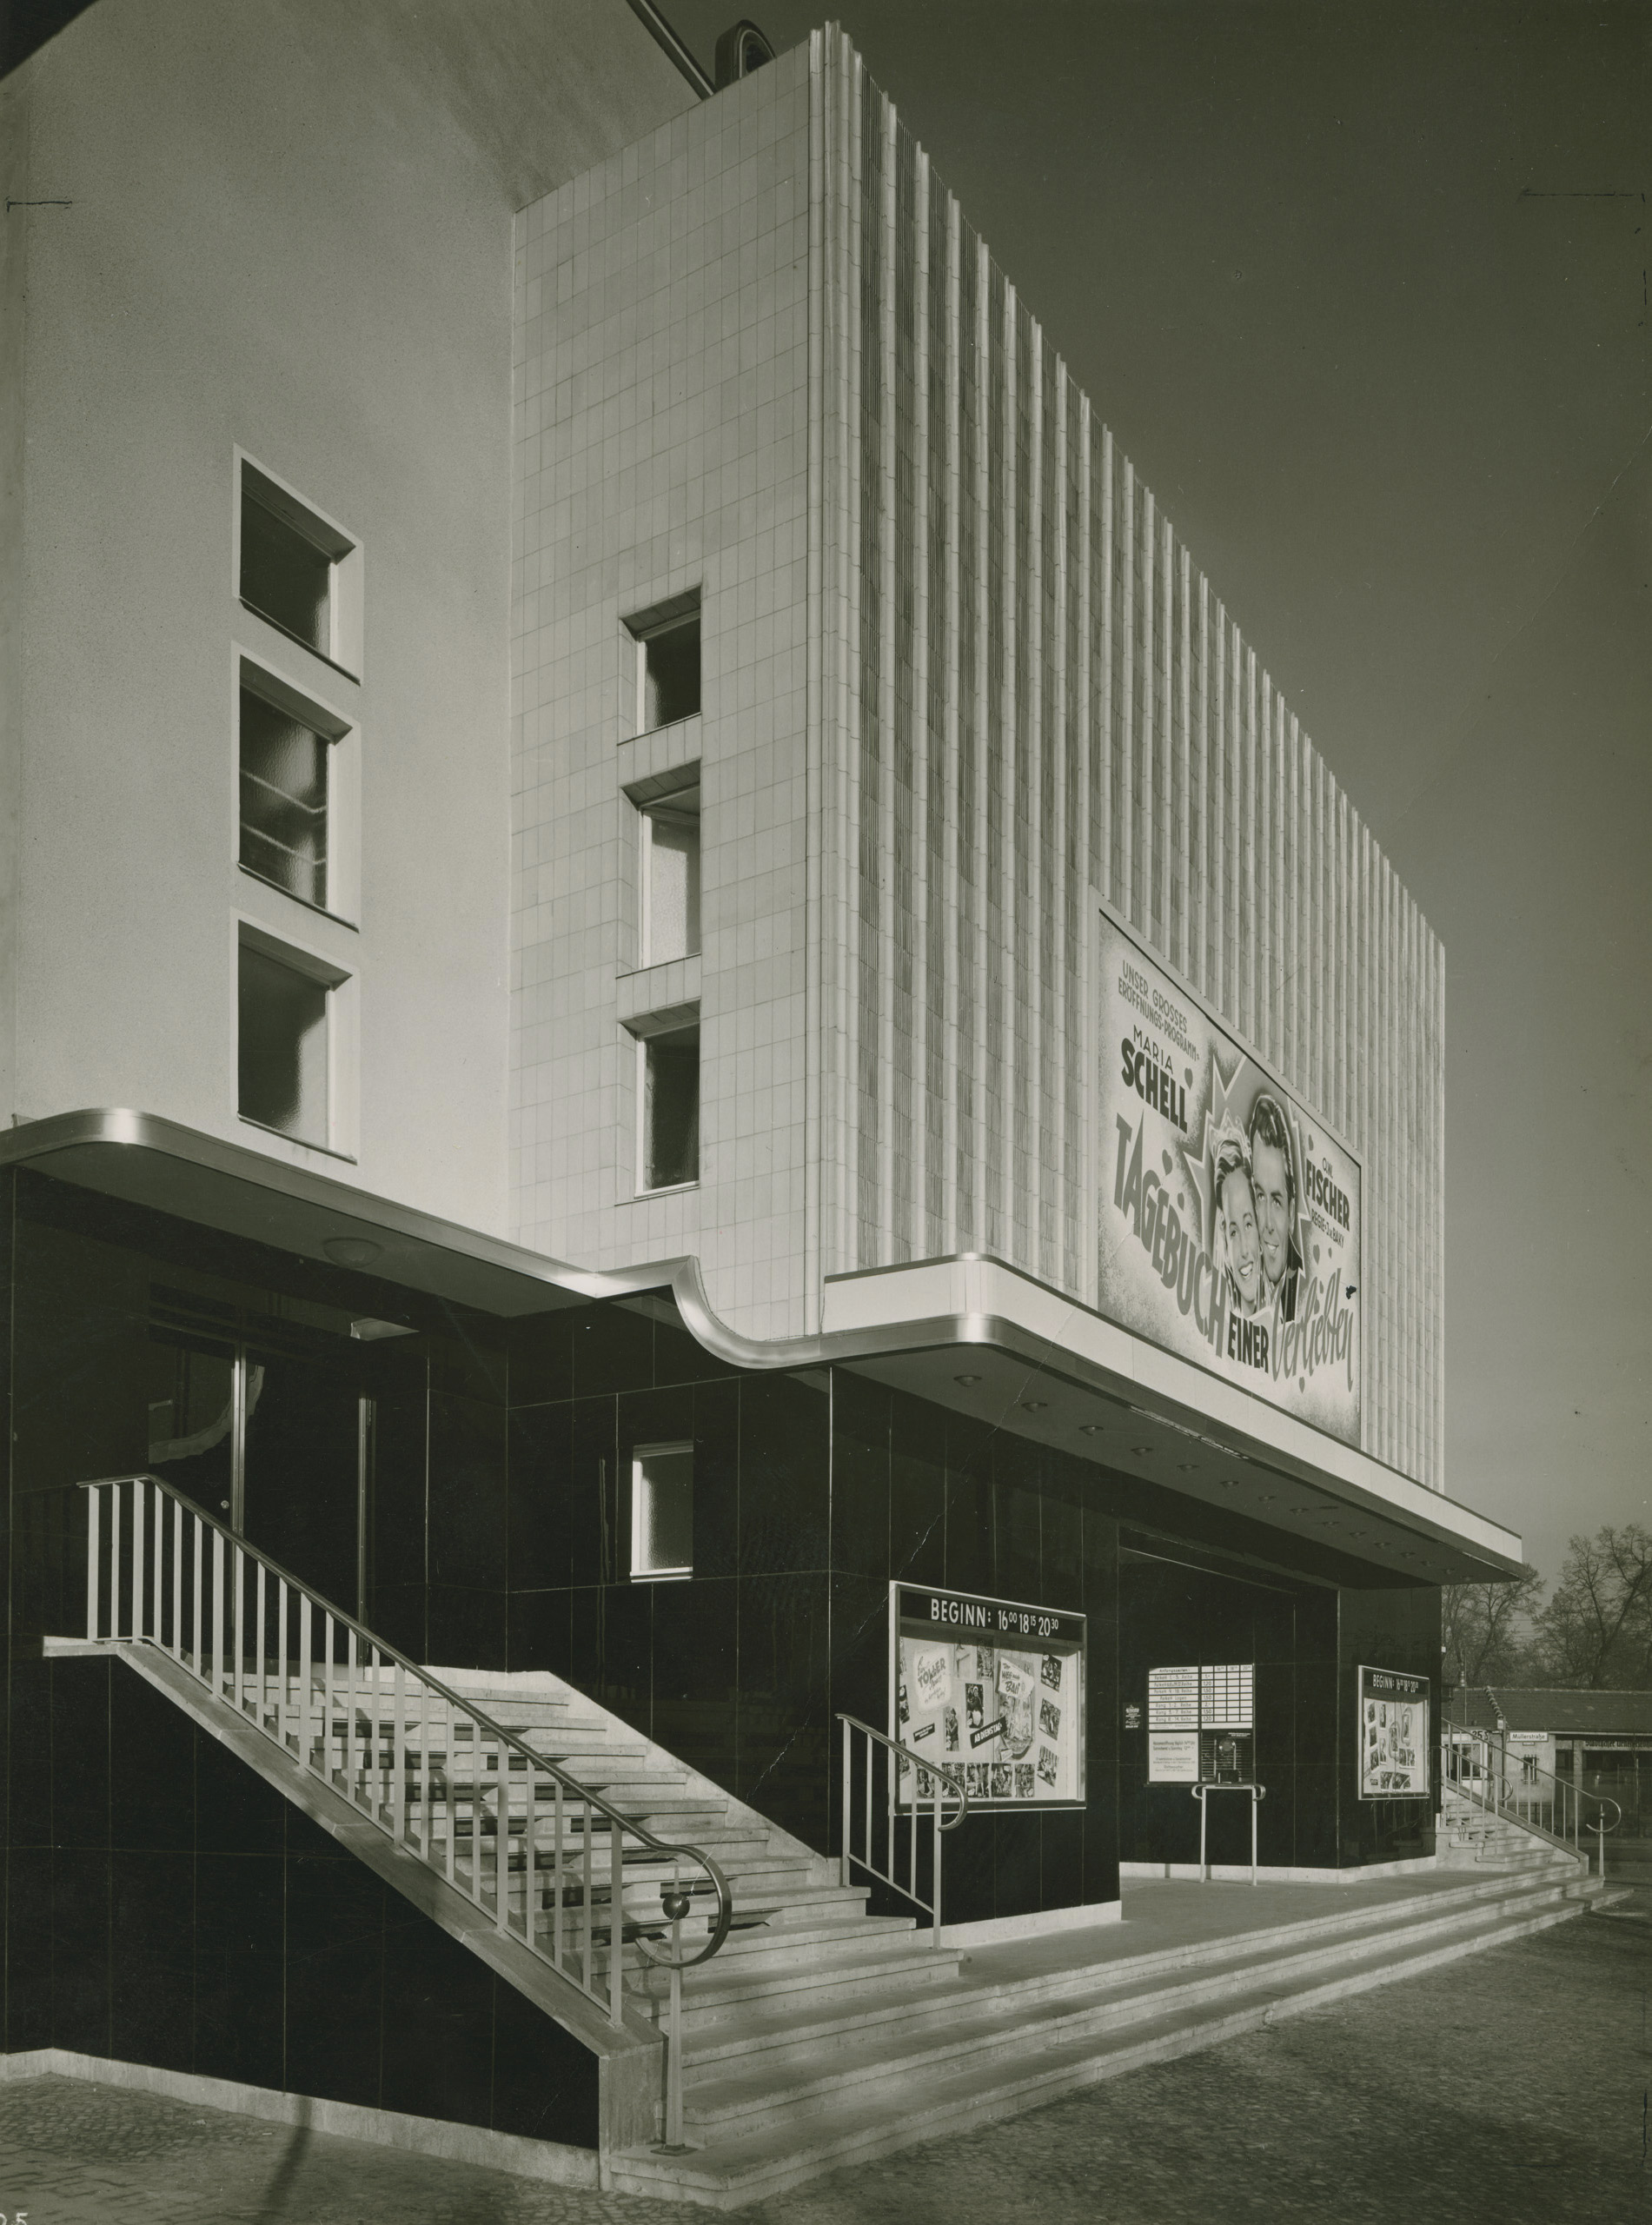 Black and white photo: diagonal view of the façade with film advertisements